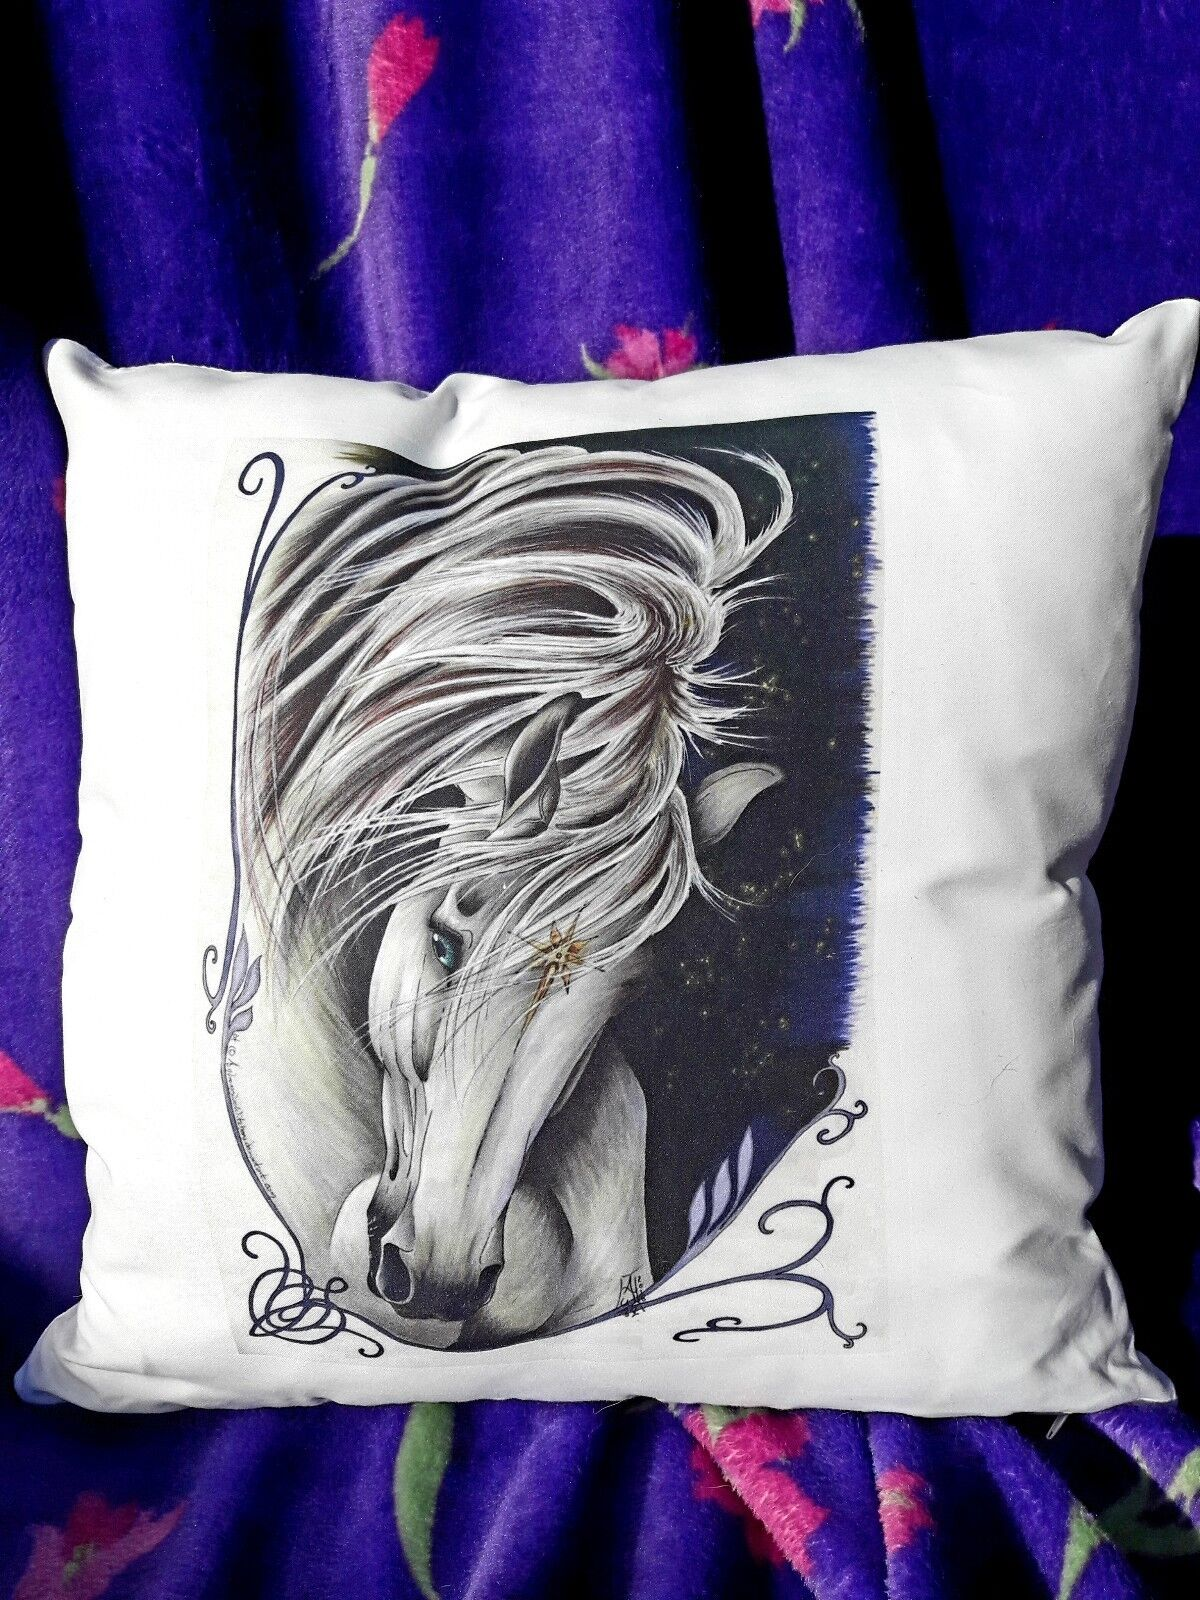 Asfaloth the White Horse decorative pillow, by Artist AndromedasWitchery